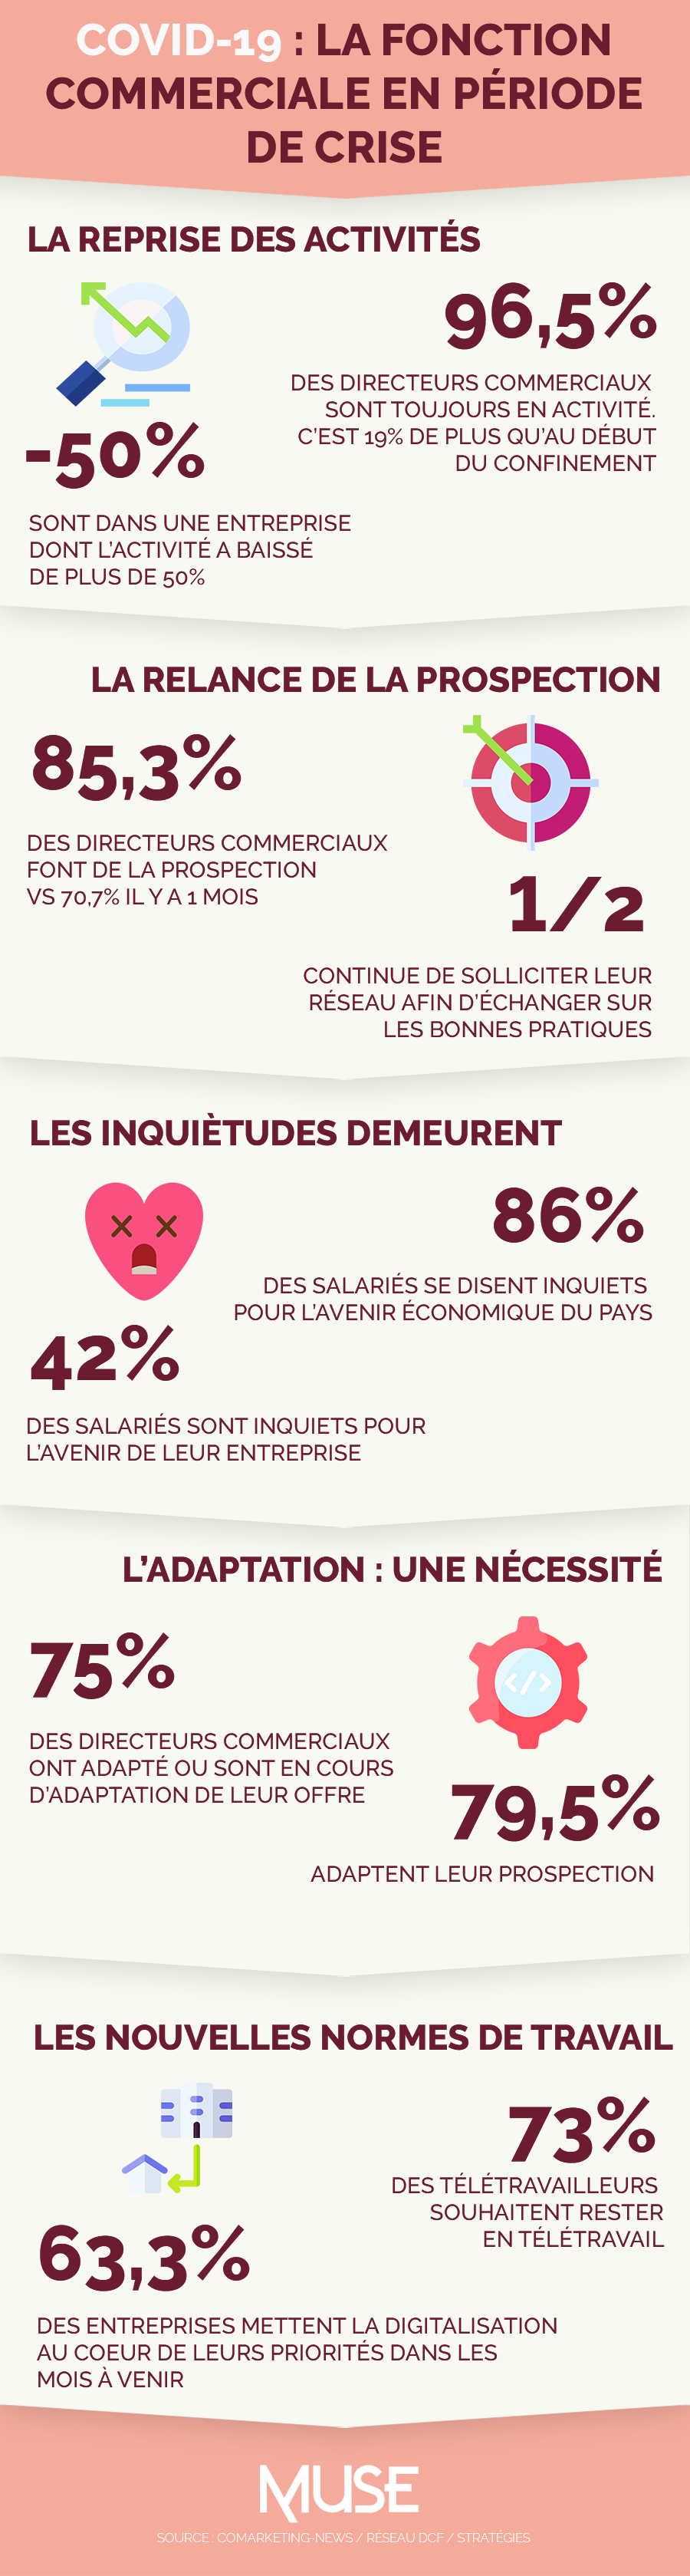 Infographie - Commercial covid